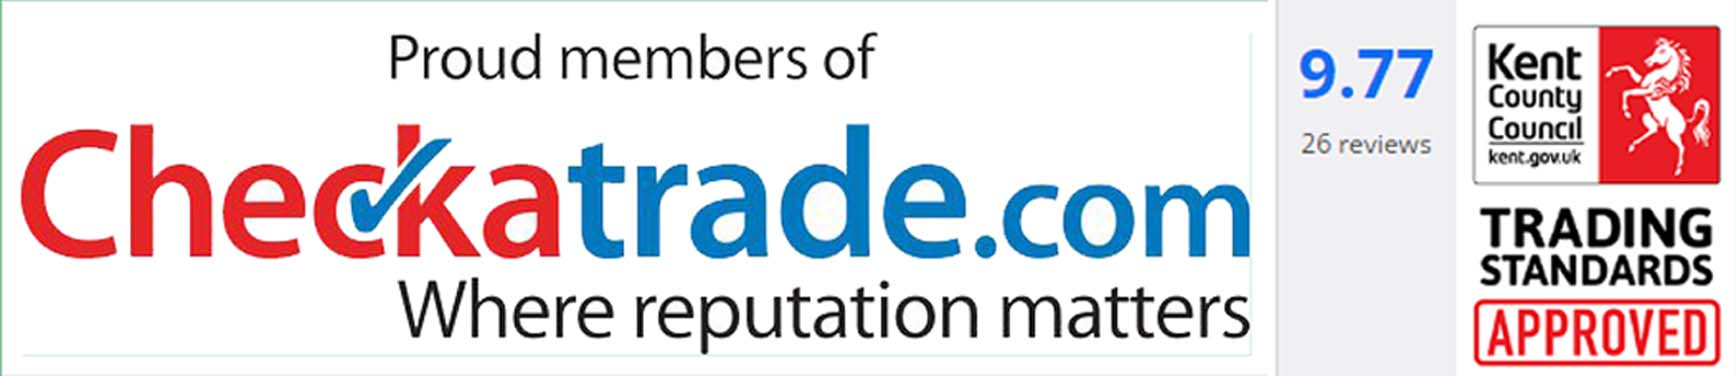 Checkatrade logo and score